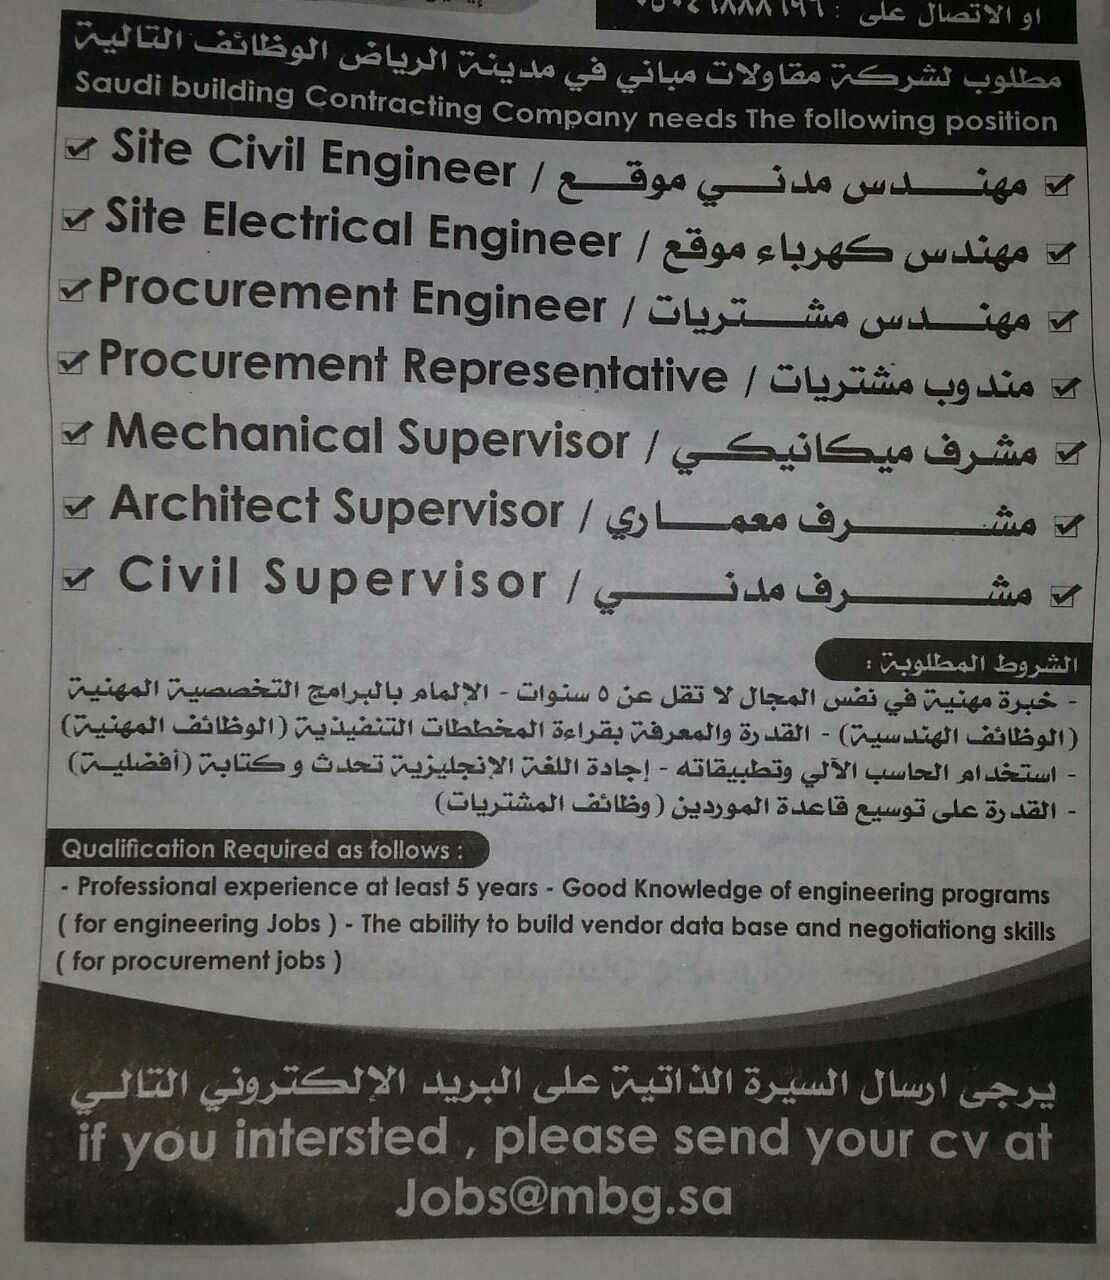 site engineer requried job in ksa 17 03 2017 visa not there site engineer requried job in ksa 17 03 2017 visa not there